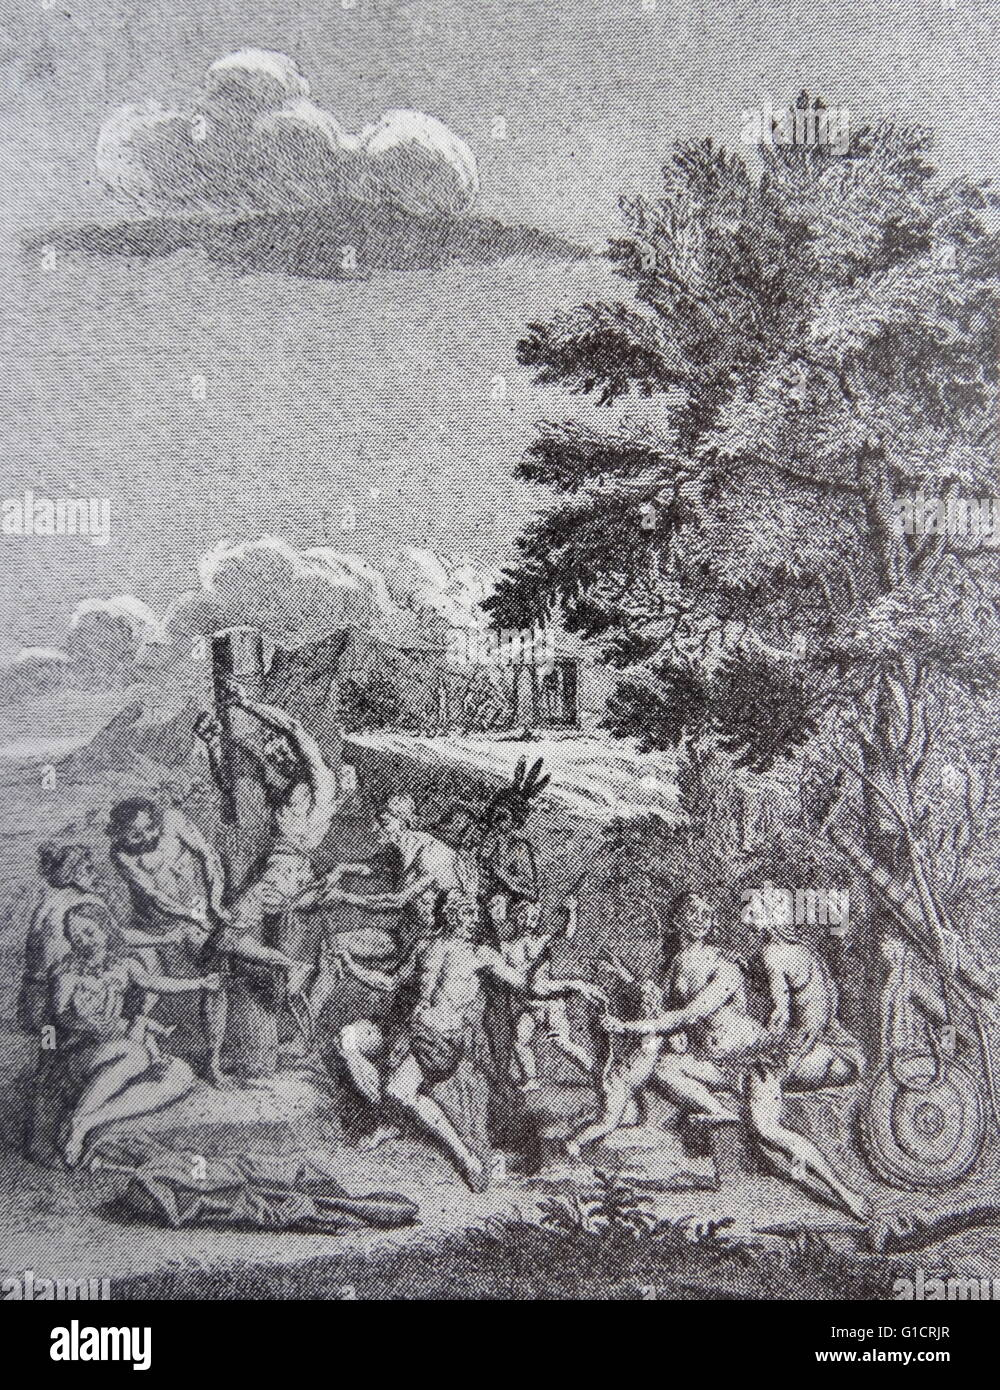 1752 illustration of South American Indians sacrificing a Spanish Colonist. By jorge Juan y Ulloa - Stock Image